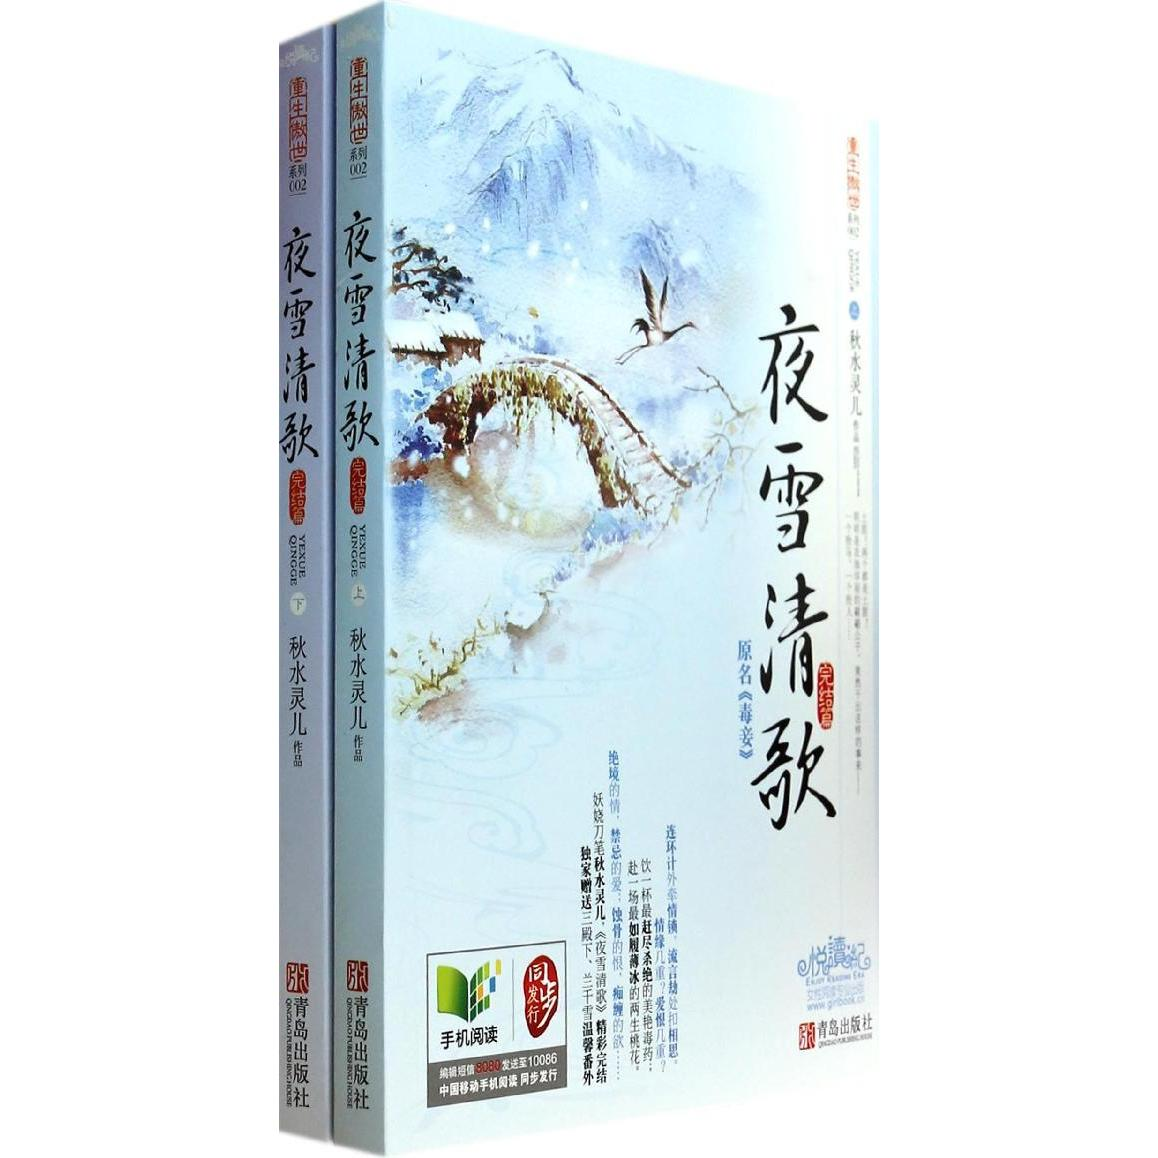 Night snow qing song contemporary chinese fiction bestseller genuine